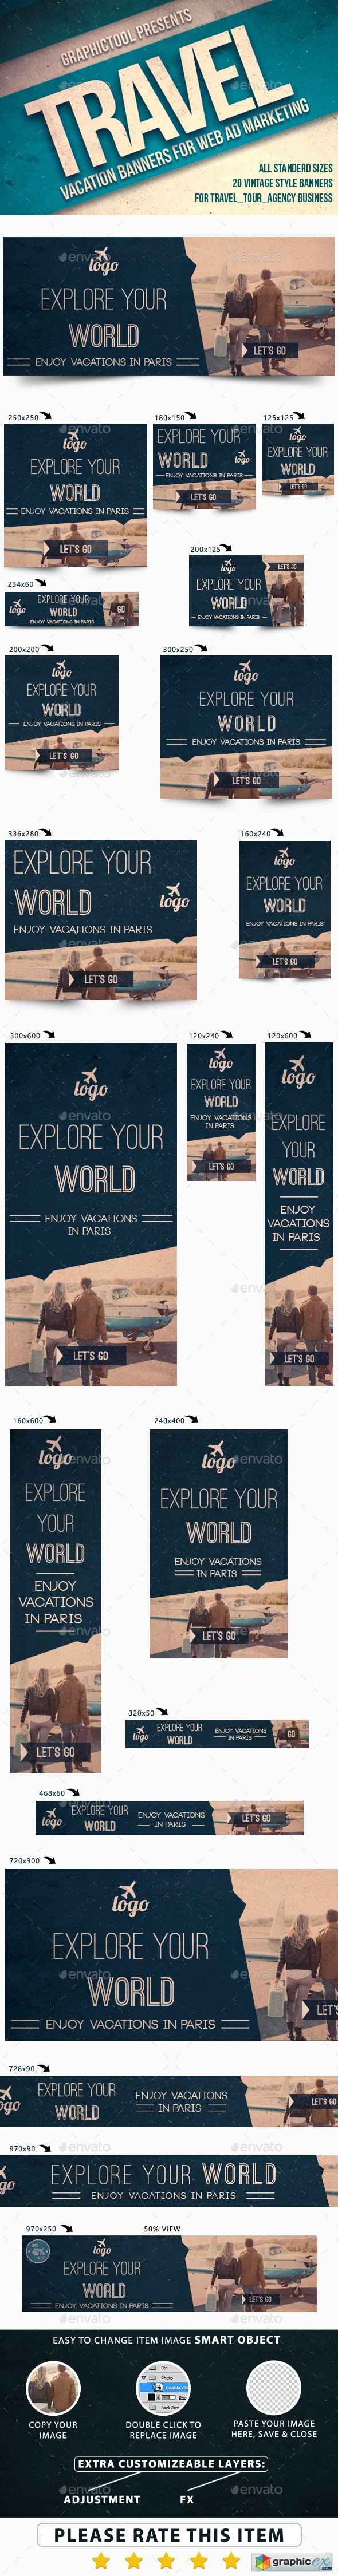 Vintage Travel Web Ad Marketing Banners